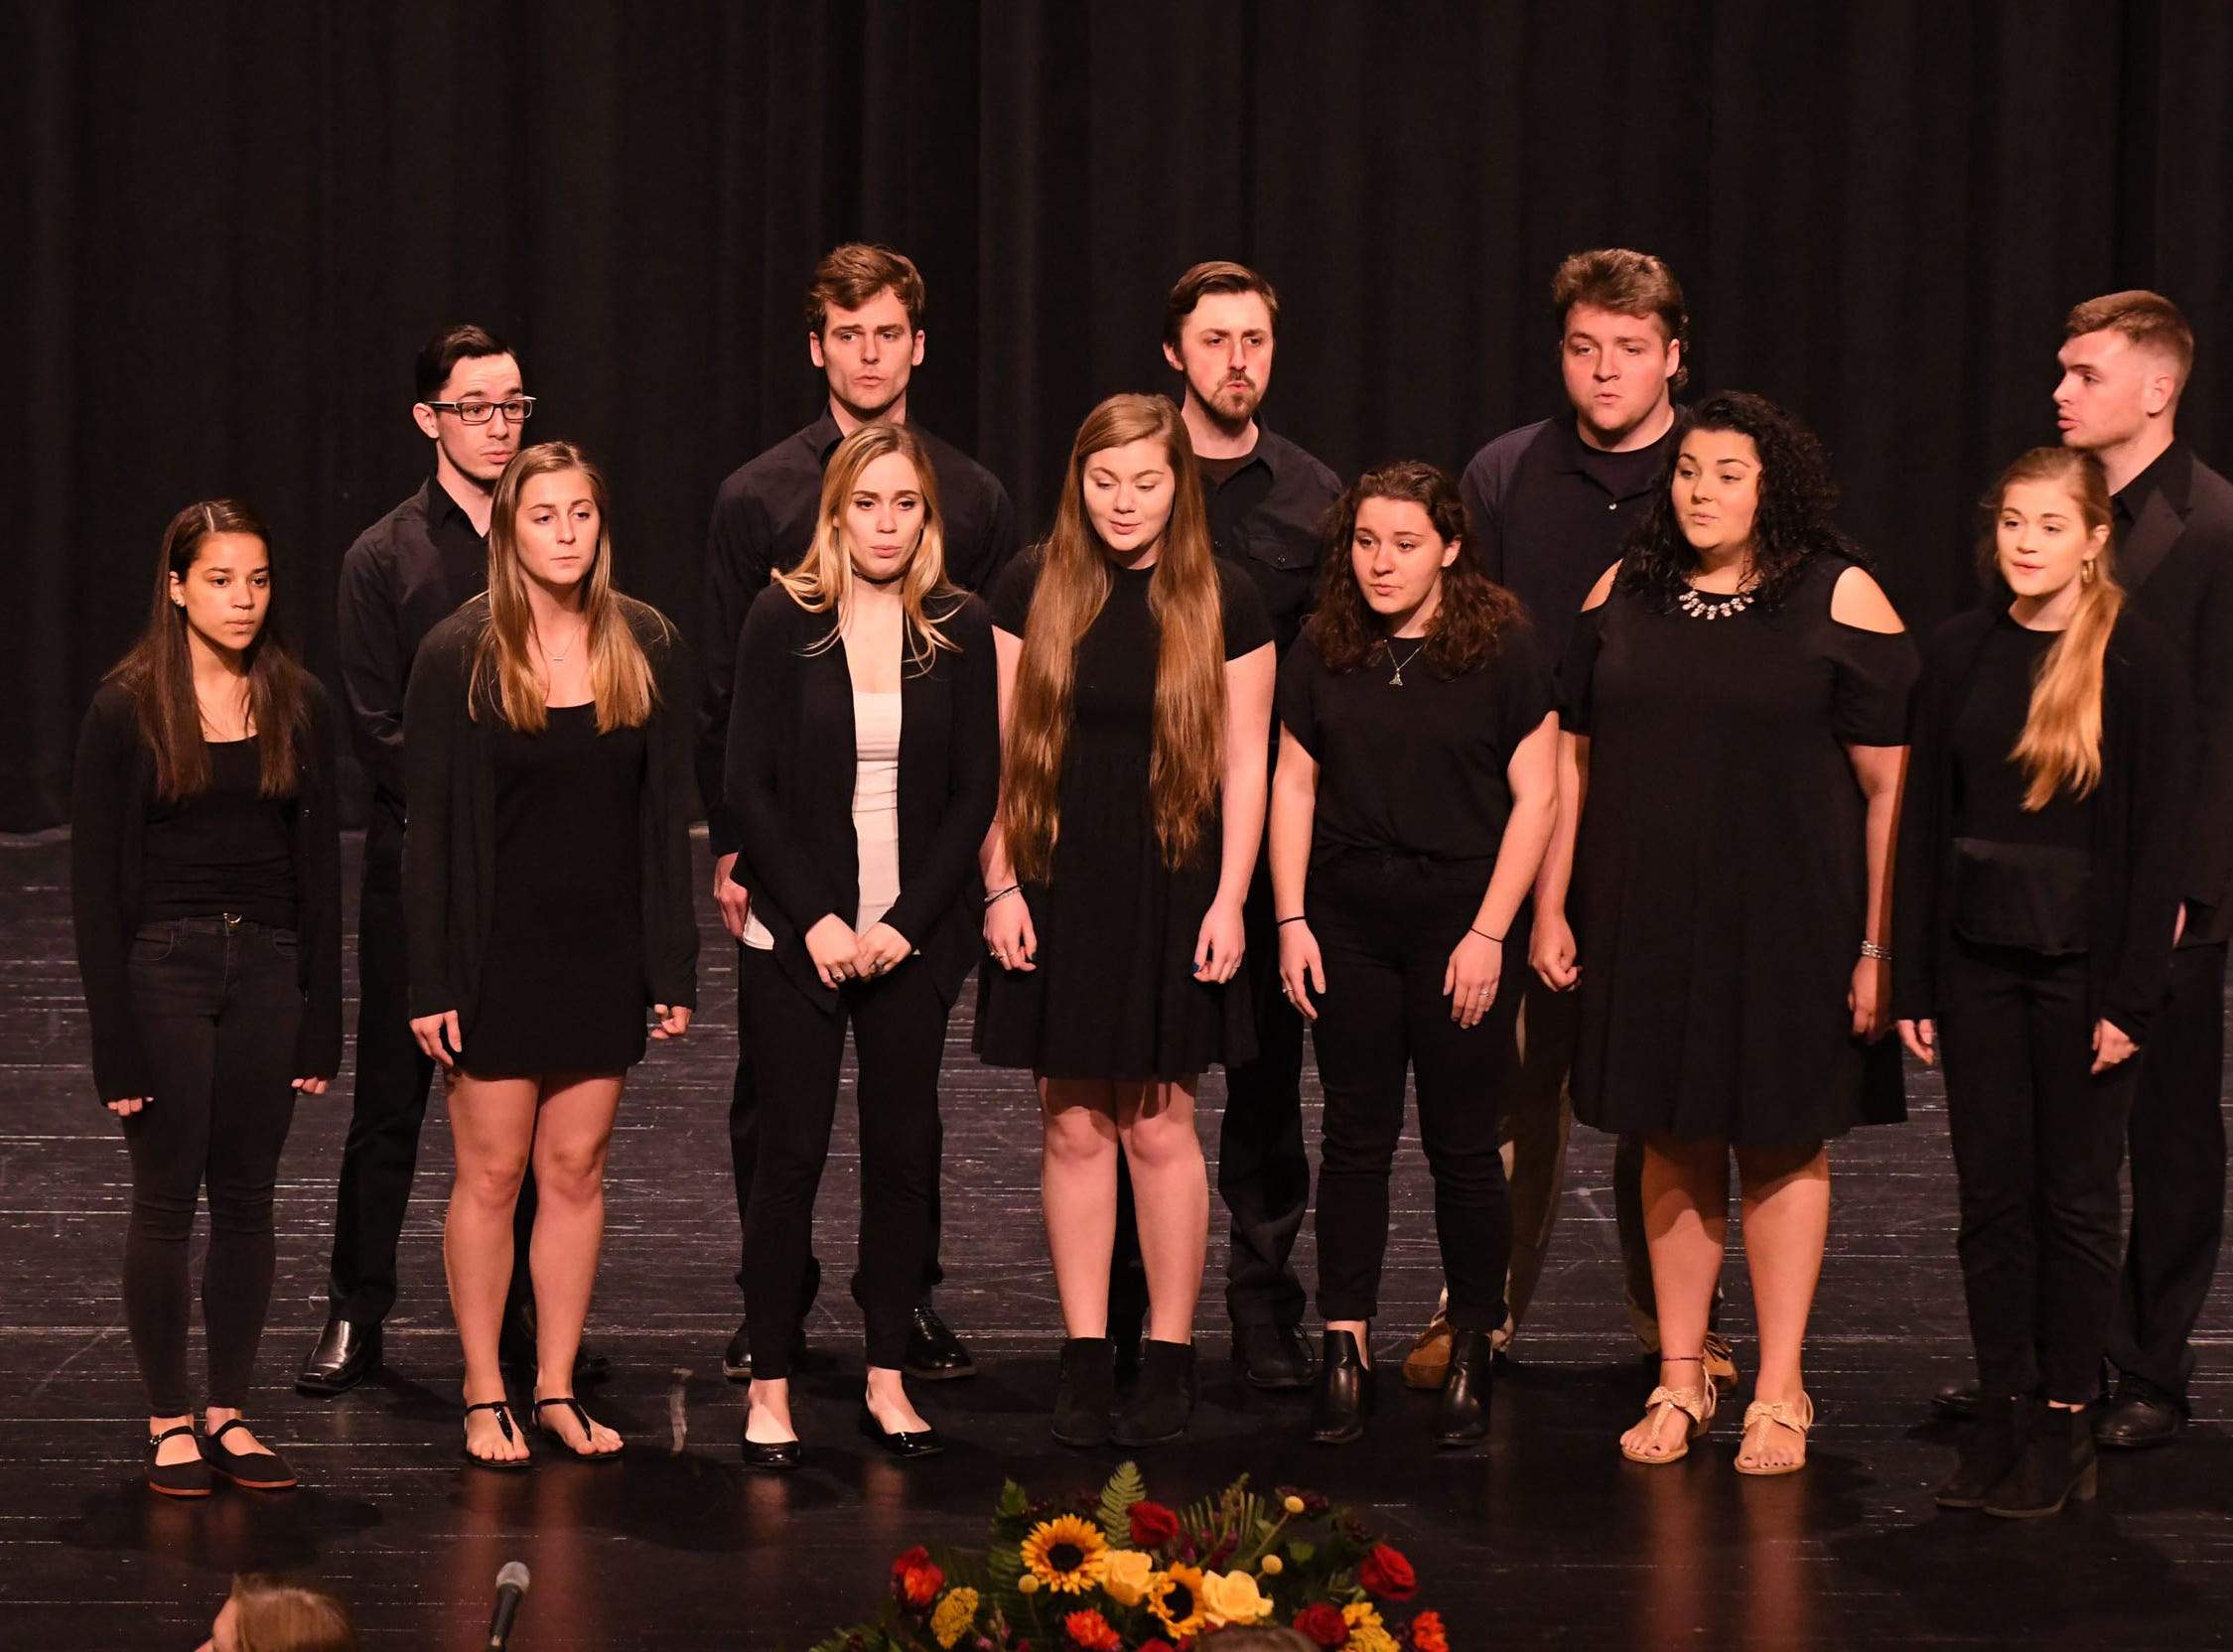 The Star-Spangled Banner was sang by the Salisbury University Squawkapella during the inauguration of Dr. Charles A. Wight as Salisbury University's ninth president on Wednesday, April 10, 2019 during a ceremony held at Holloway Hall on the campus of Salisbury University.